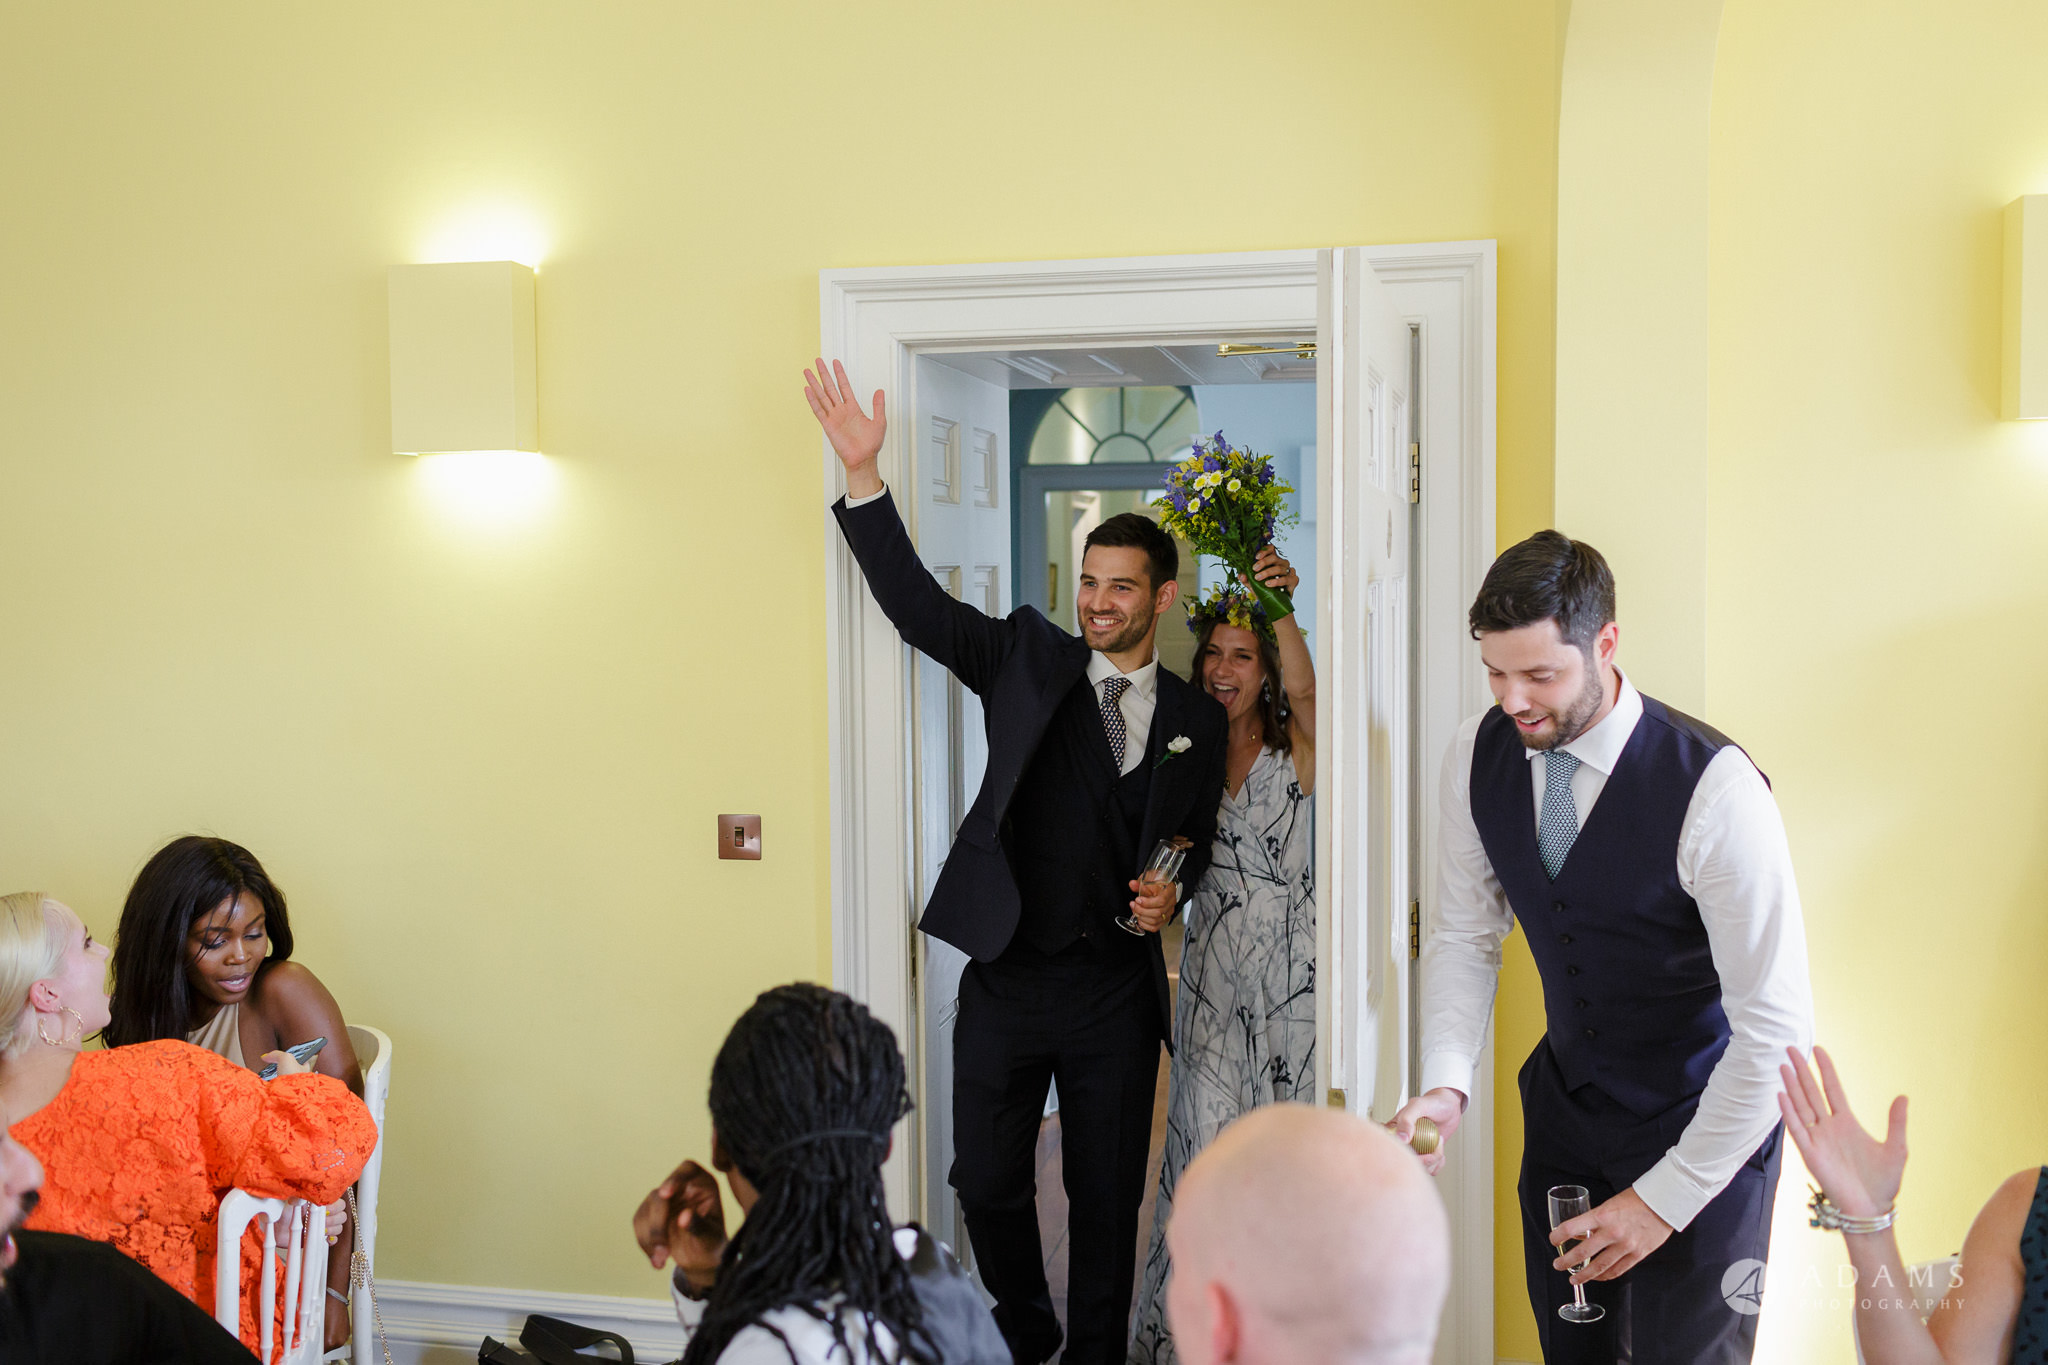 Clissold house wedding the bride and groom enter the wedding breakfast room